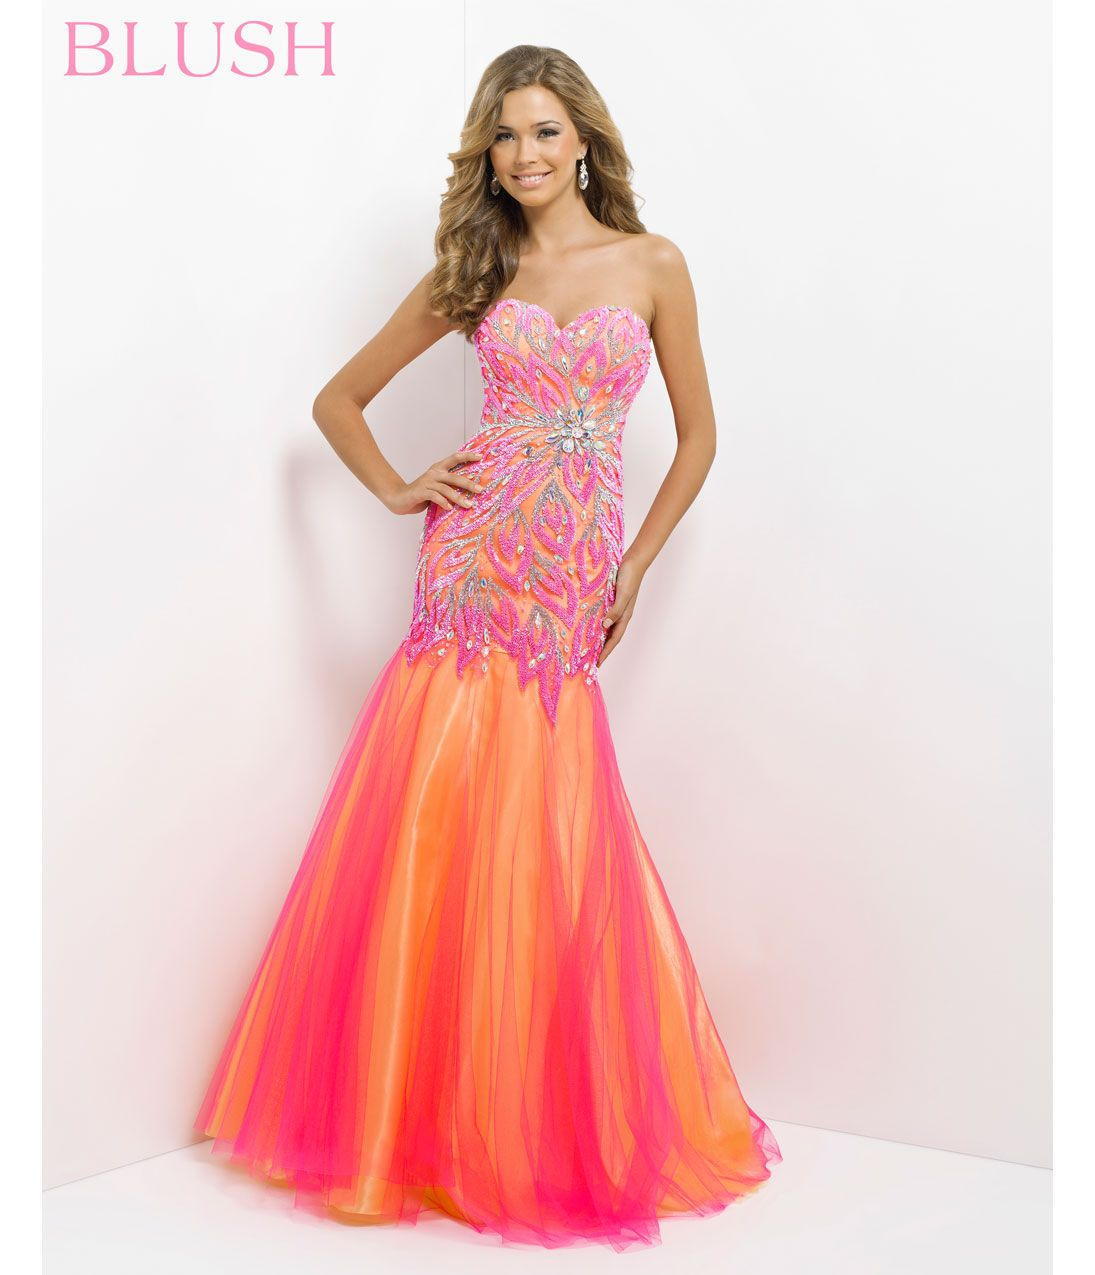 Blush 2014 Prom Dresses - Hot Pink & Yellow Strapless Embroidered ...